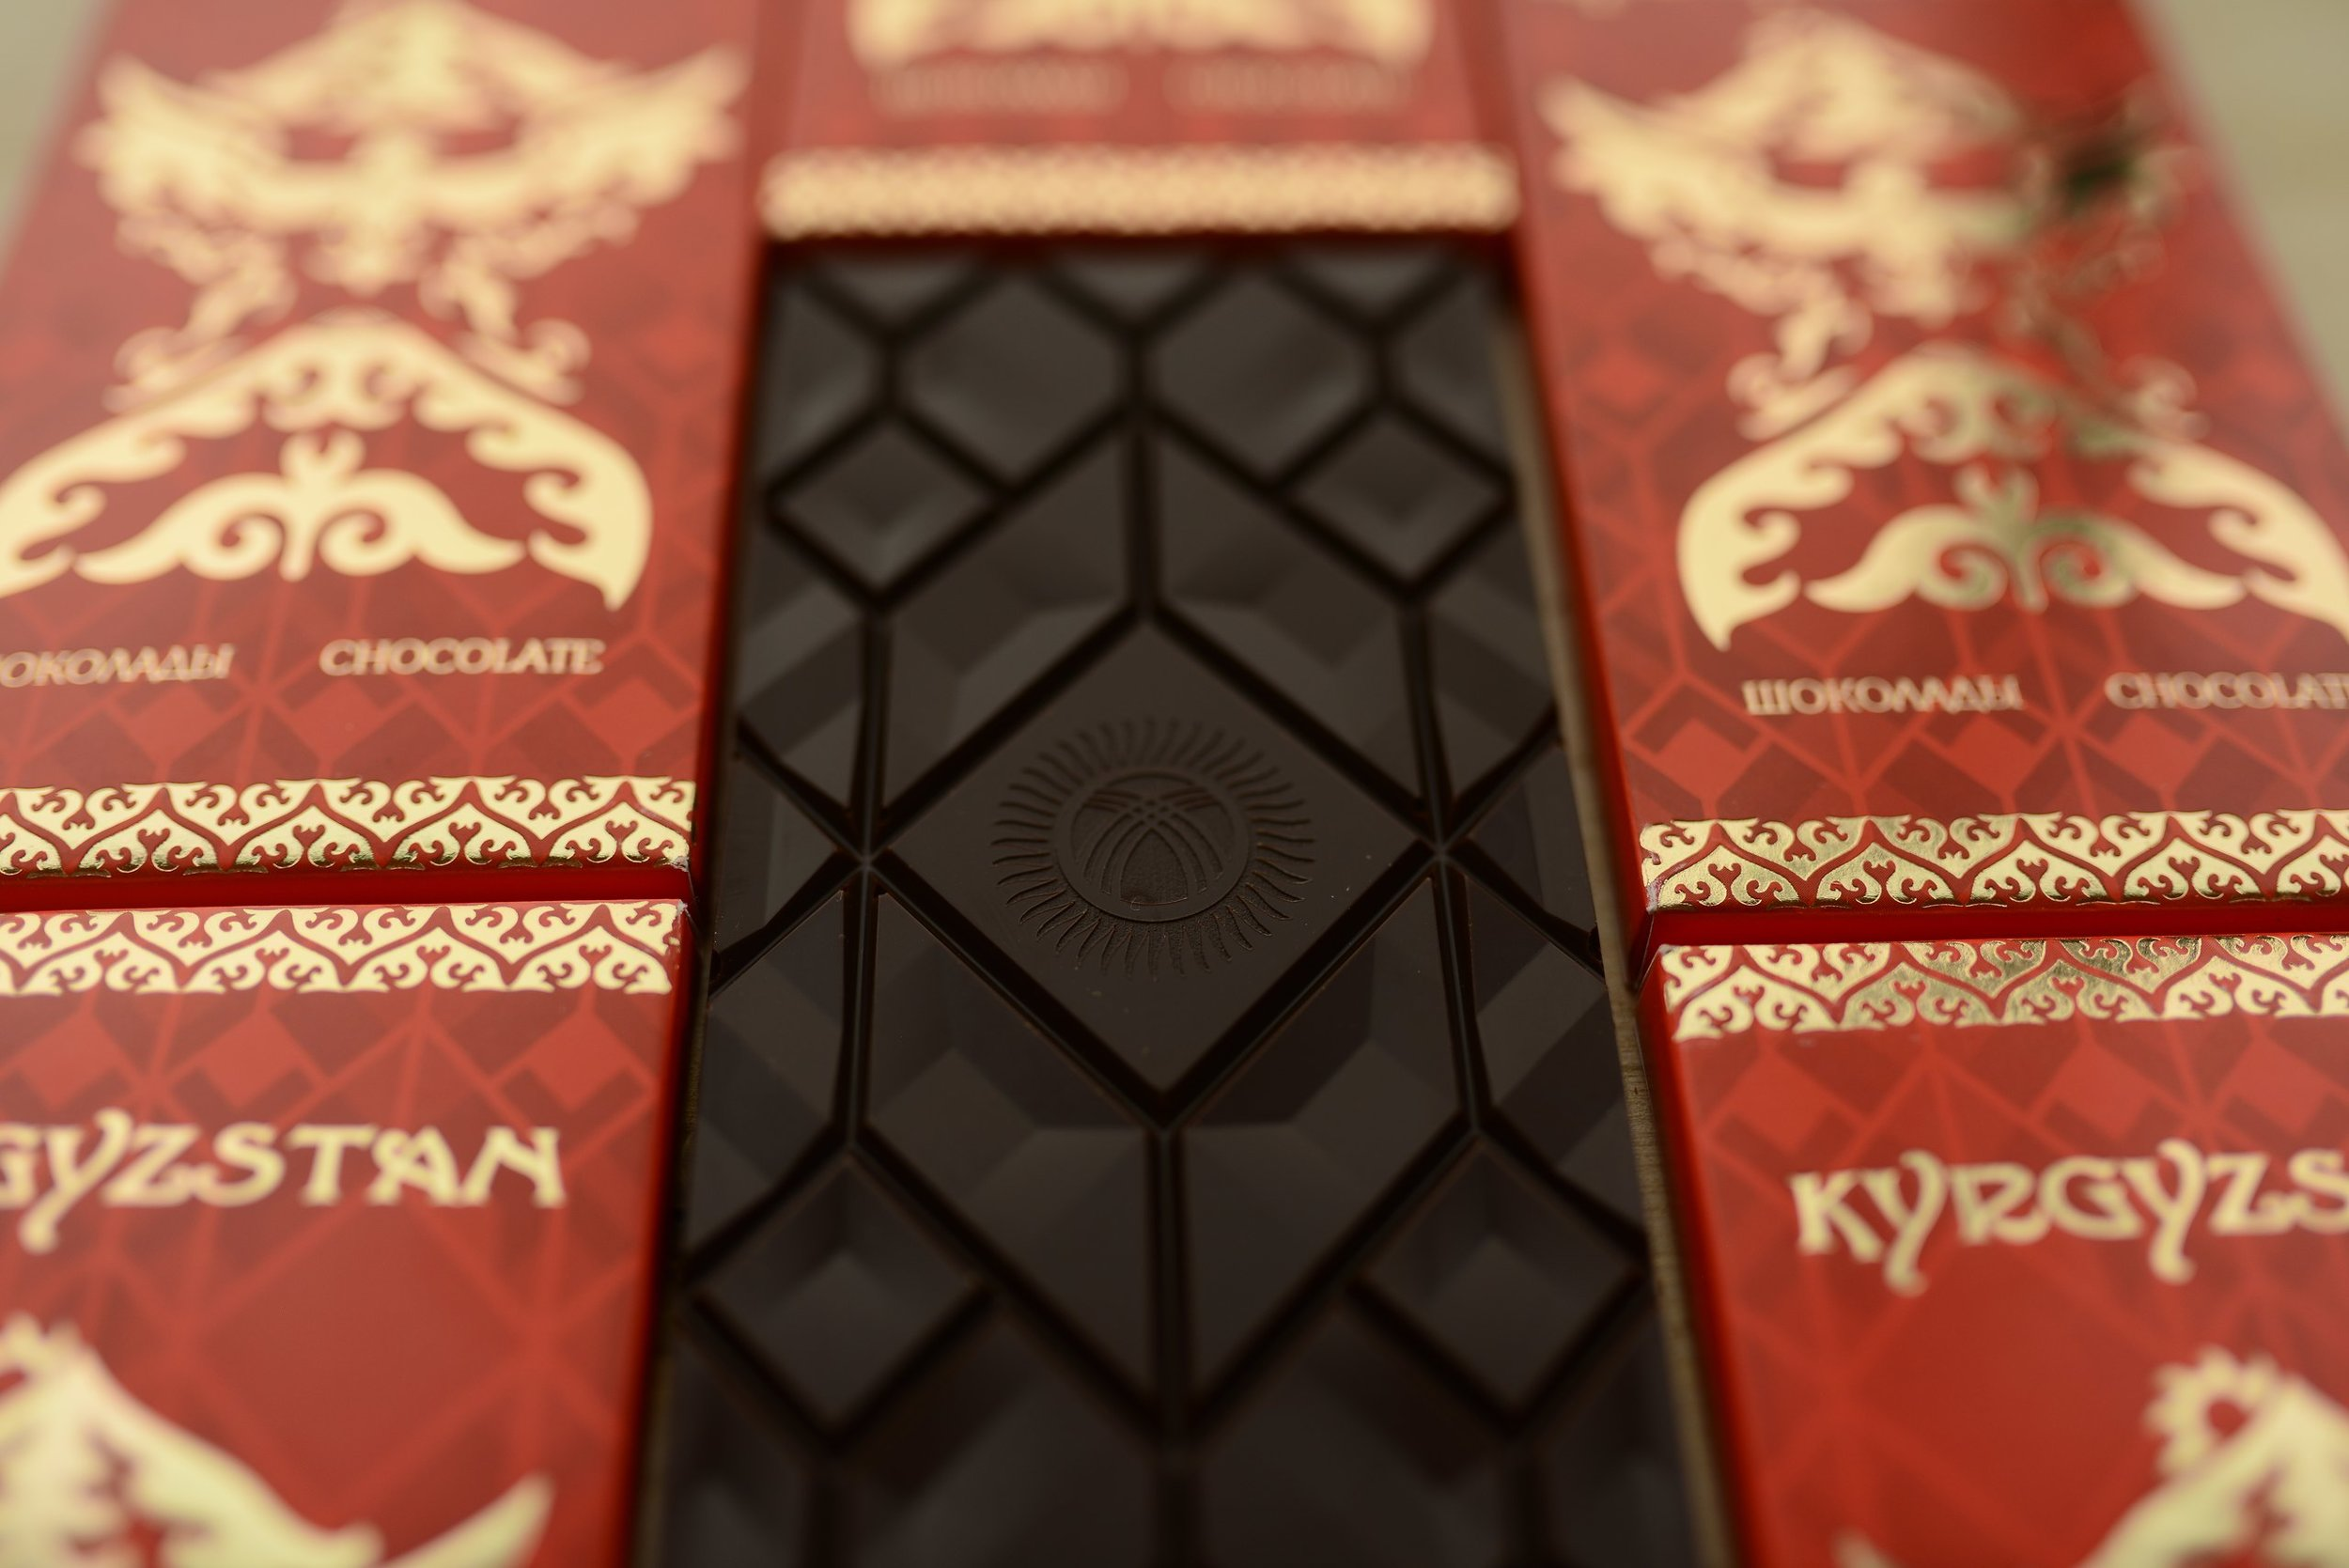 The design of the chocolate bar with a Kyrgyz flag.